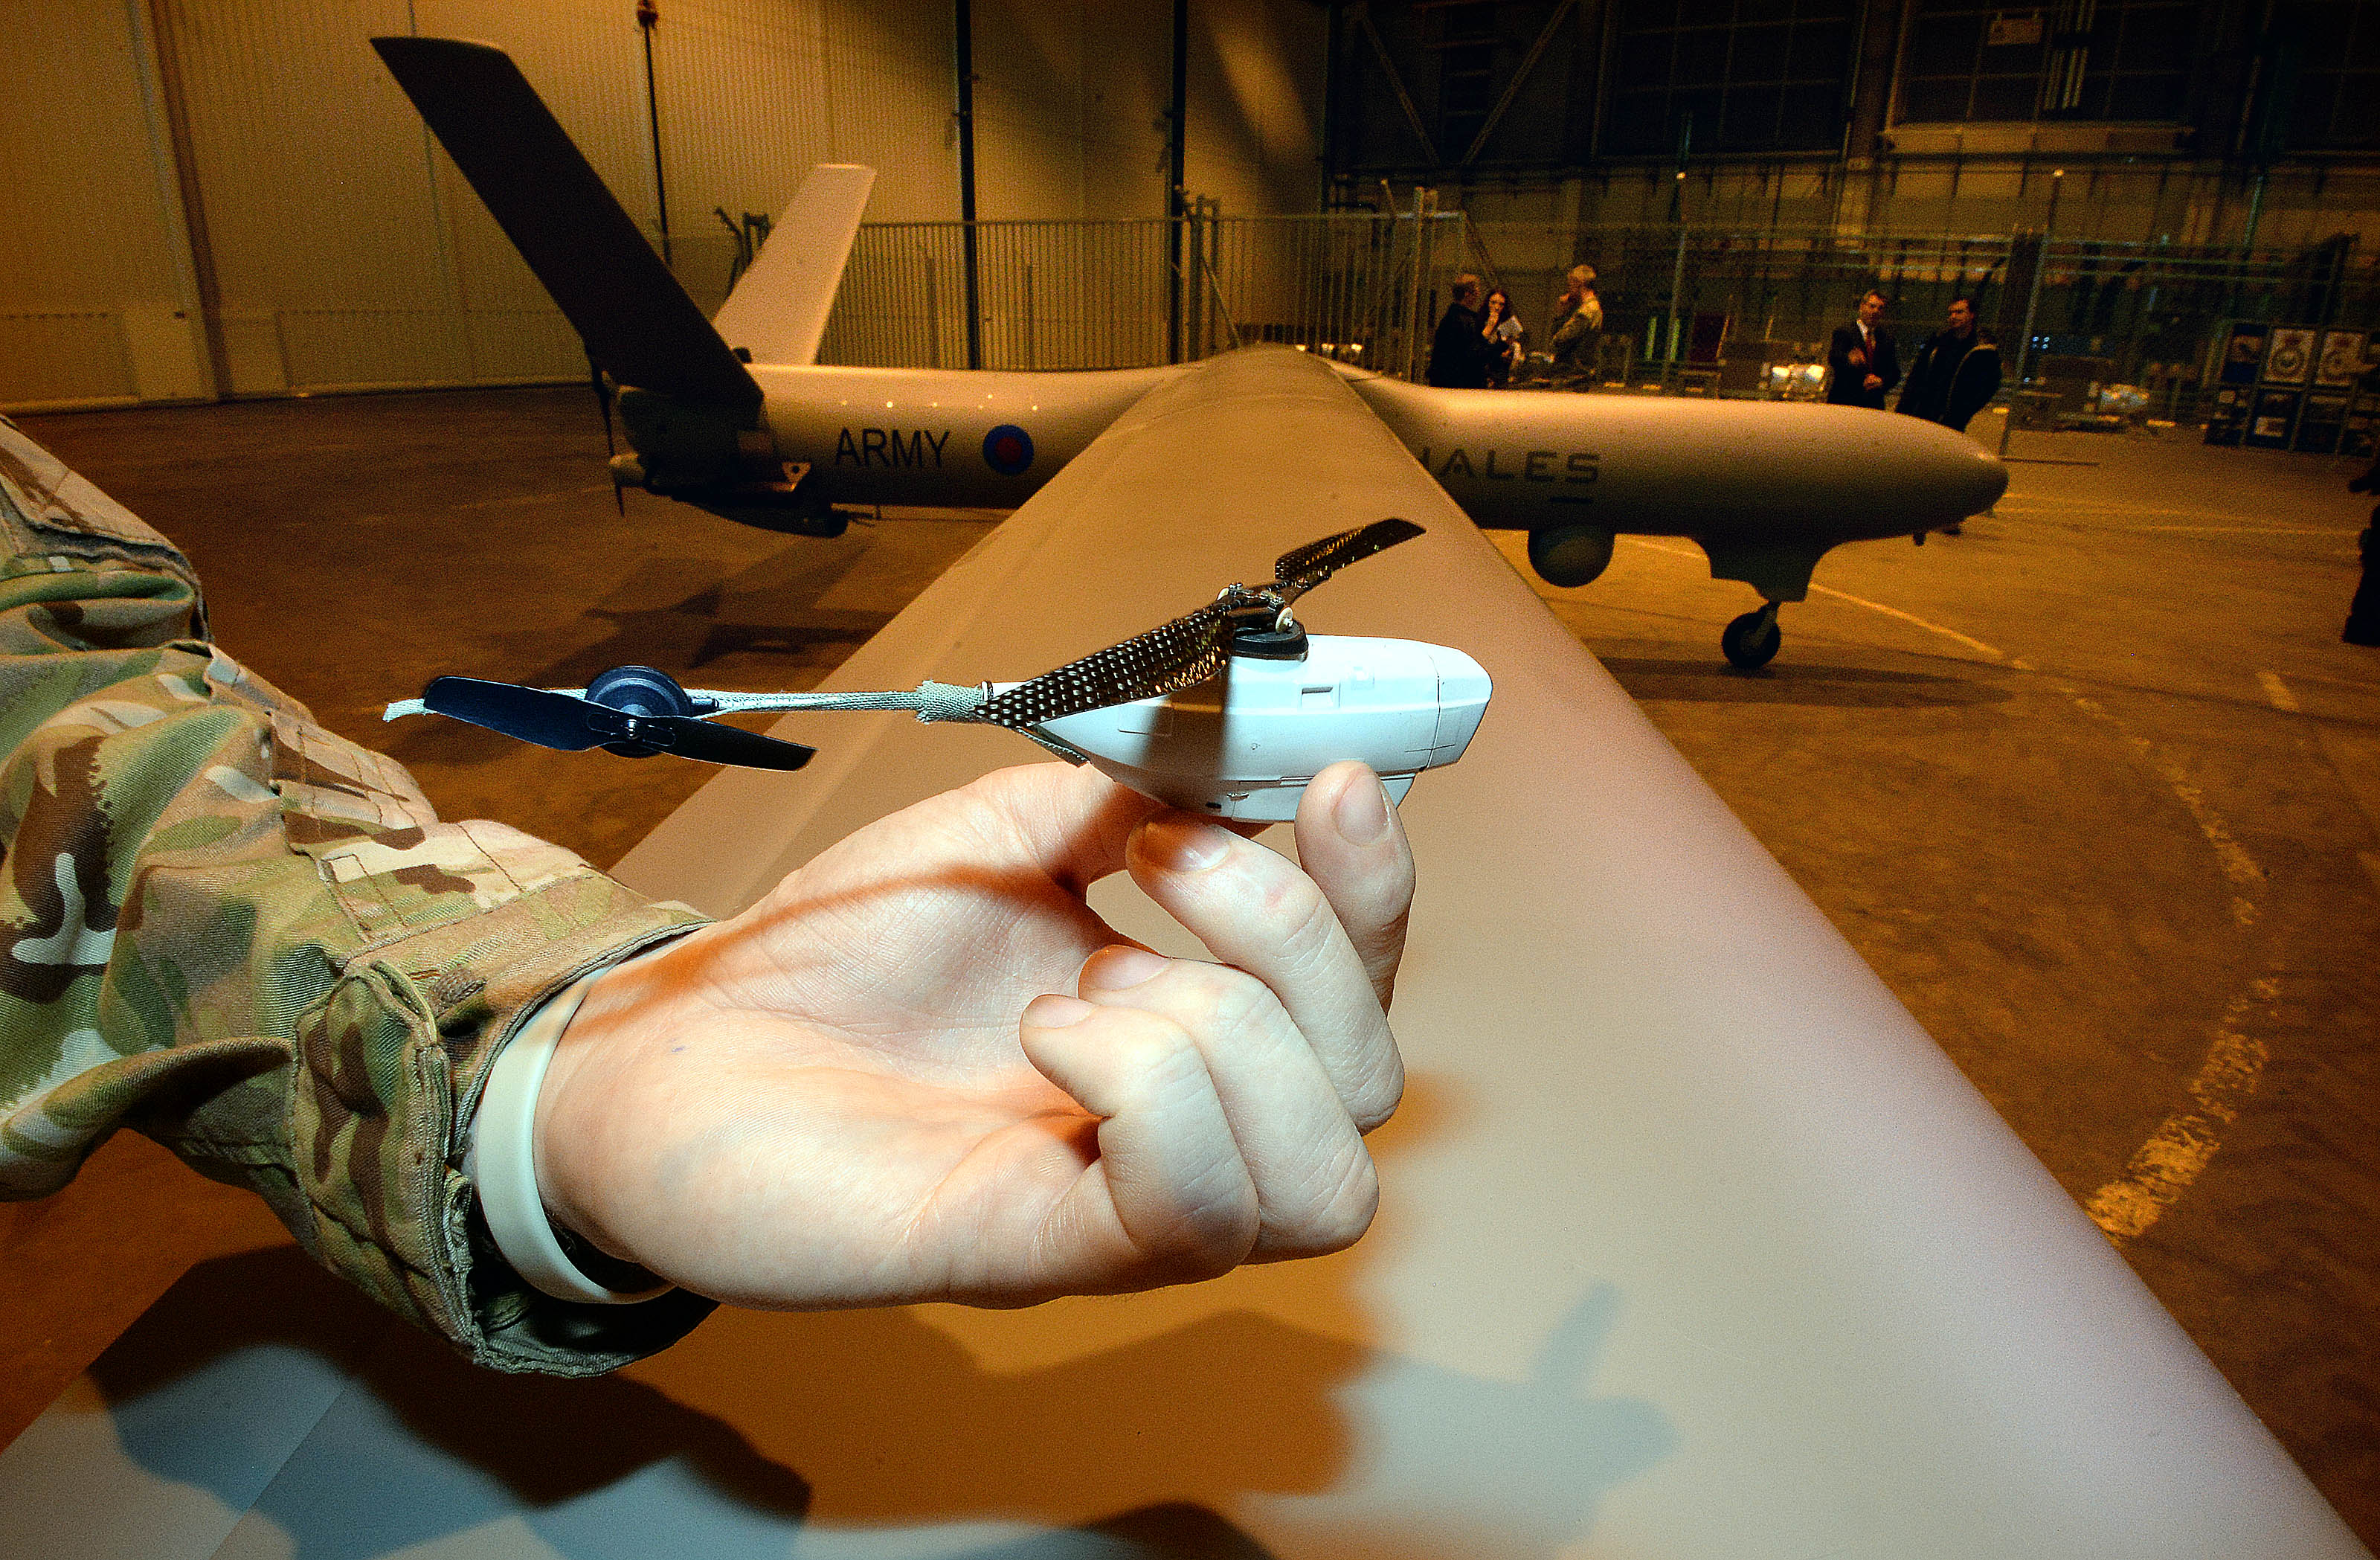 The company behind these pocket-sized military surveillance drones just got bought for $134 million